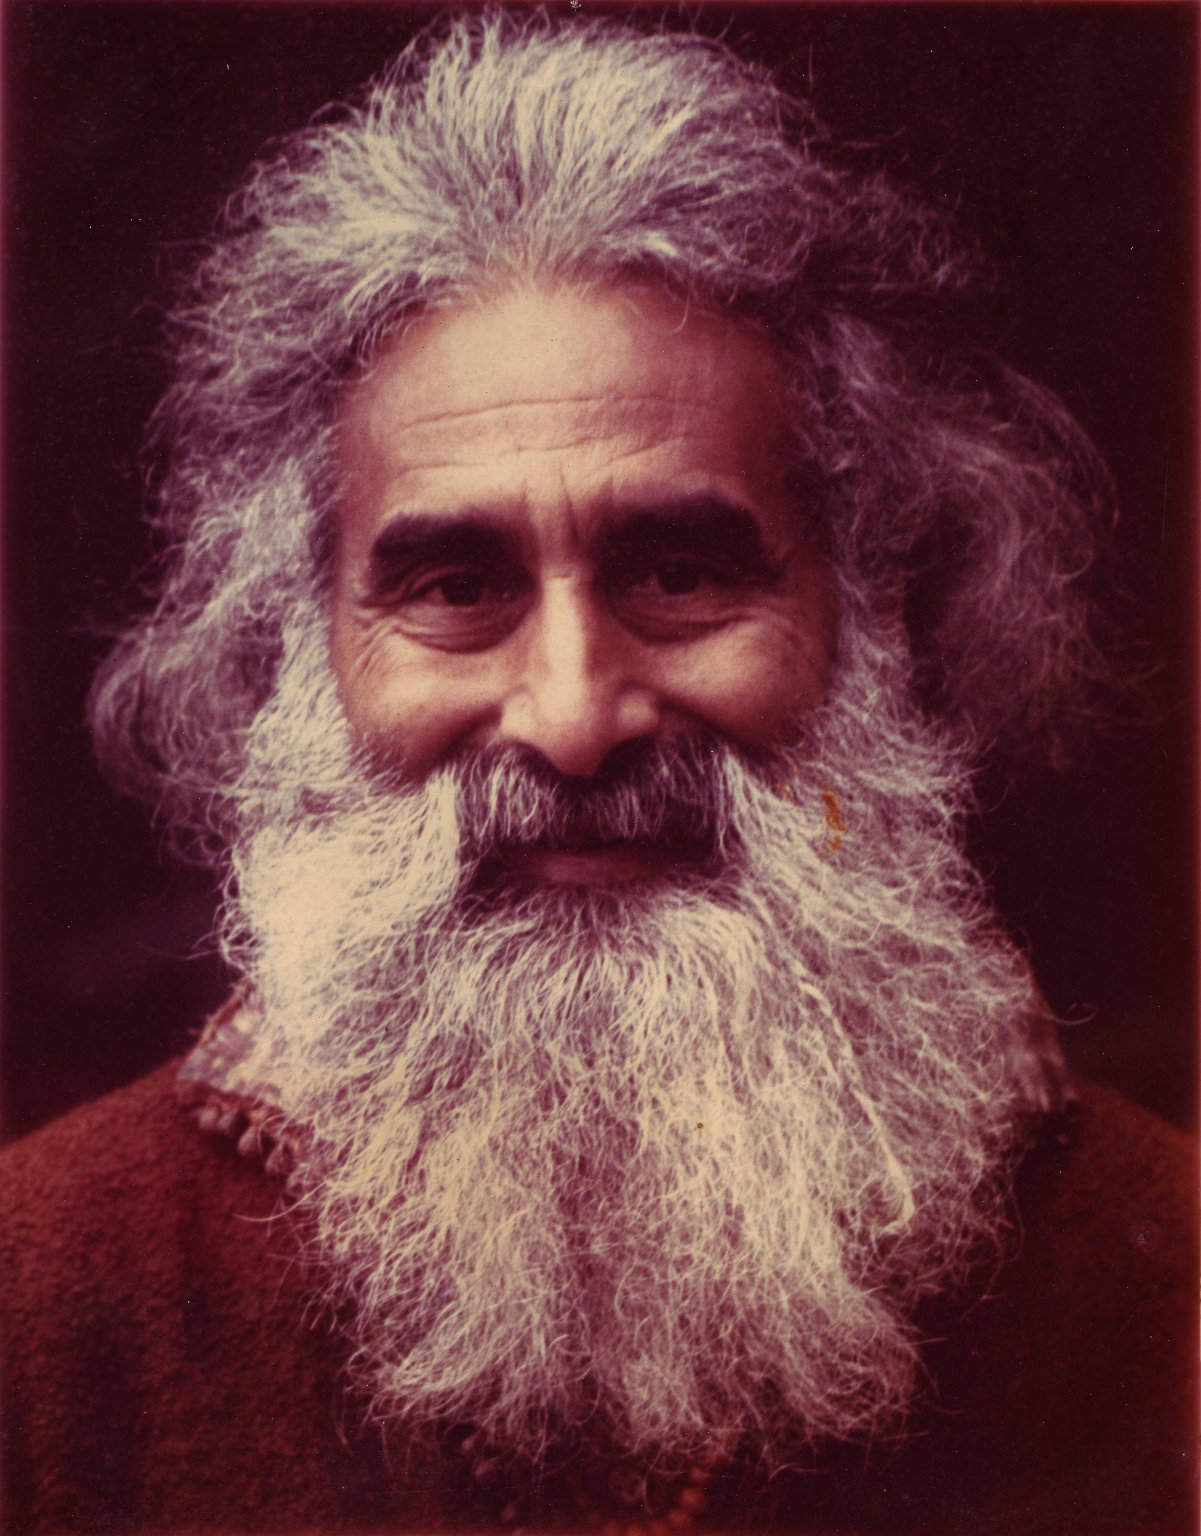 Pir Vilayat Inayat Khan in a rust colored robe, ca. 1965.